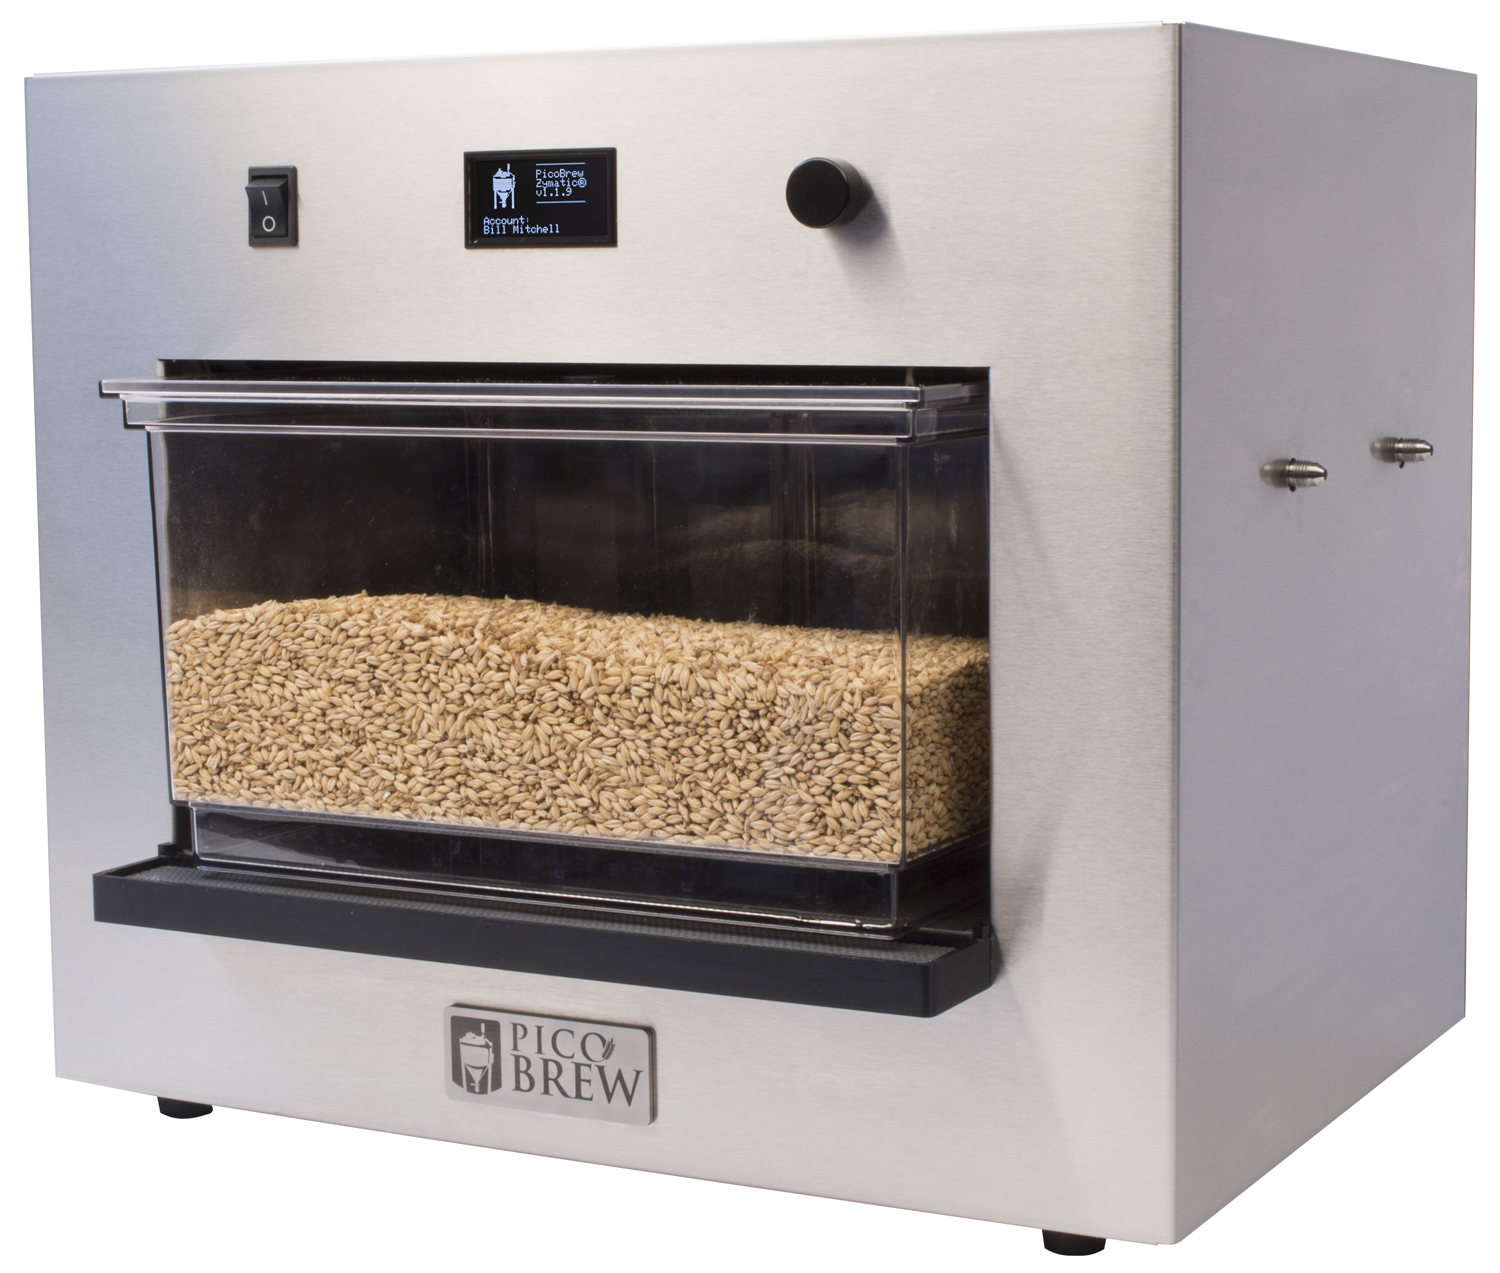 1 Photo of Pico C - Craft Beer Brewing Appliance